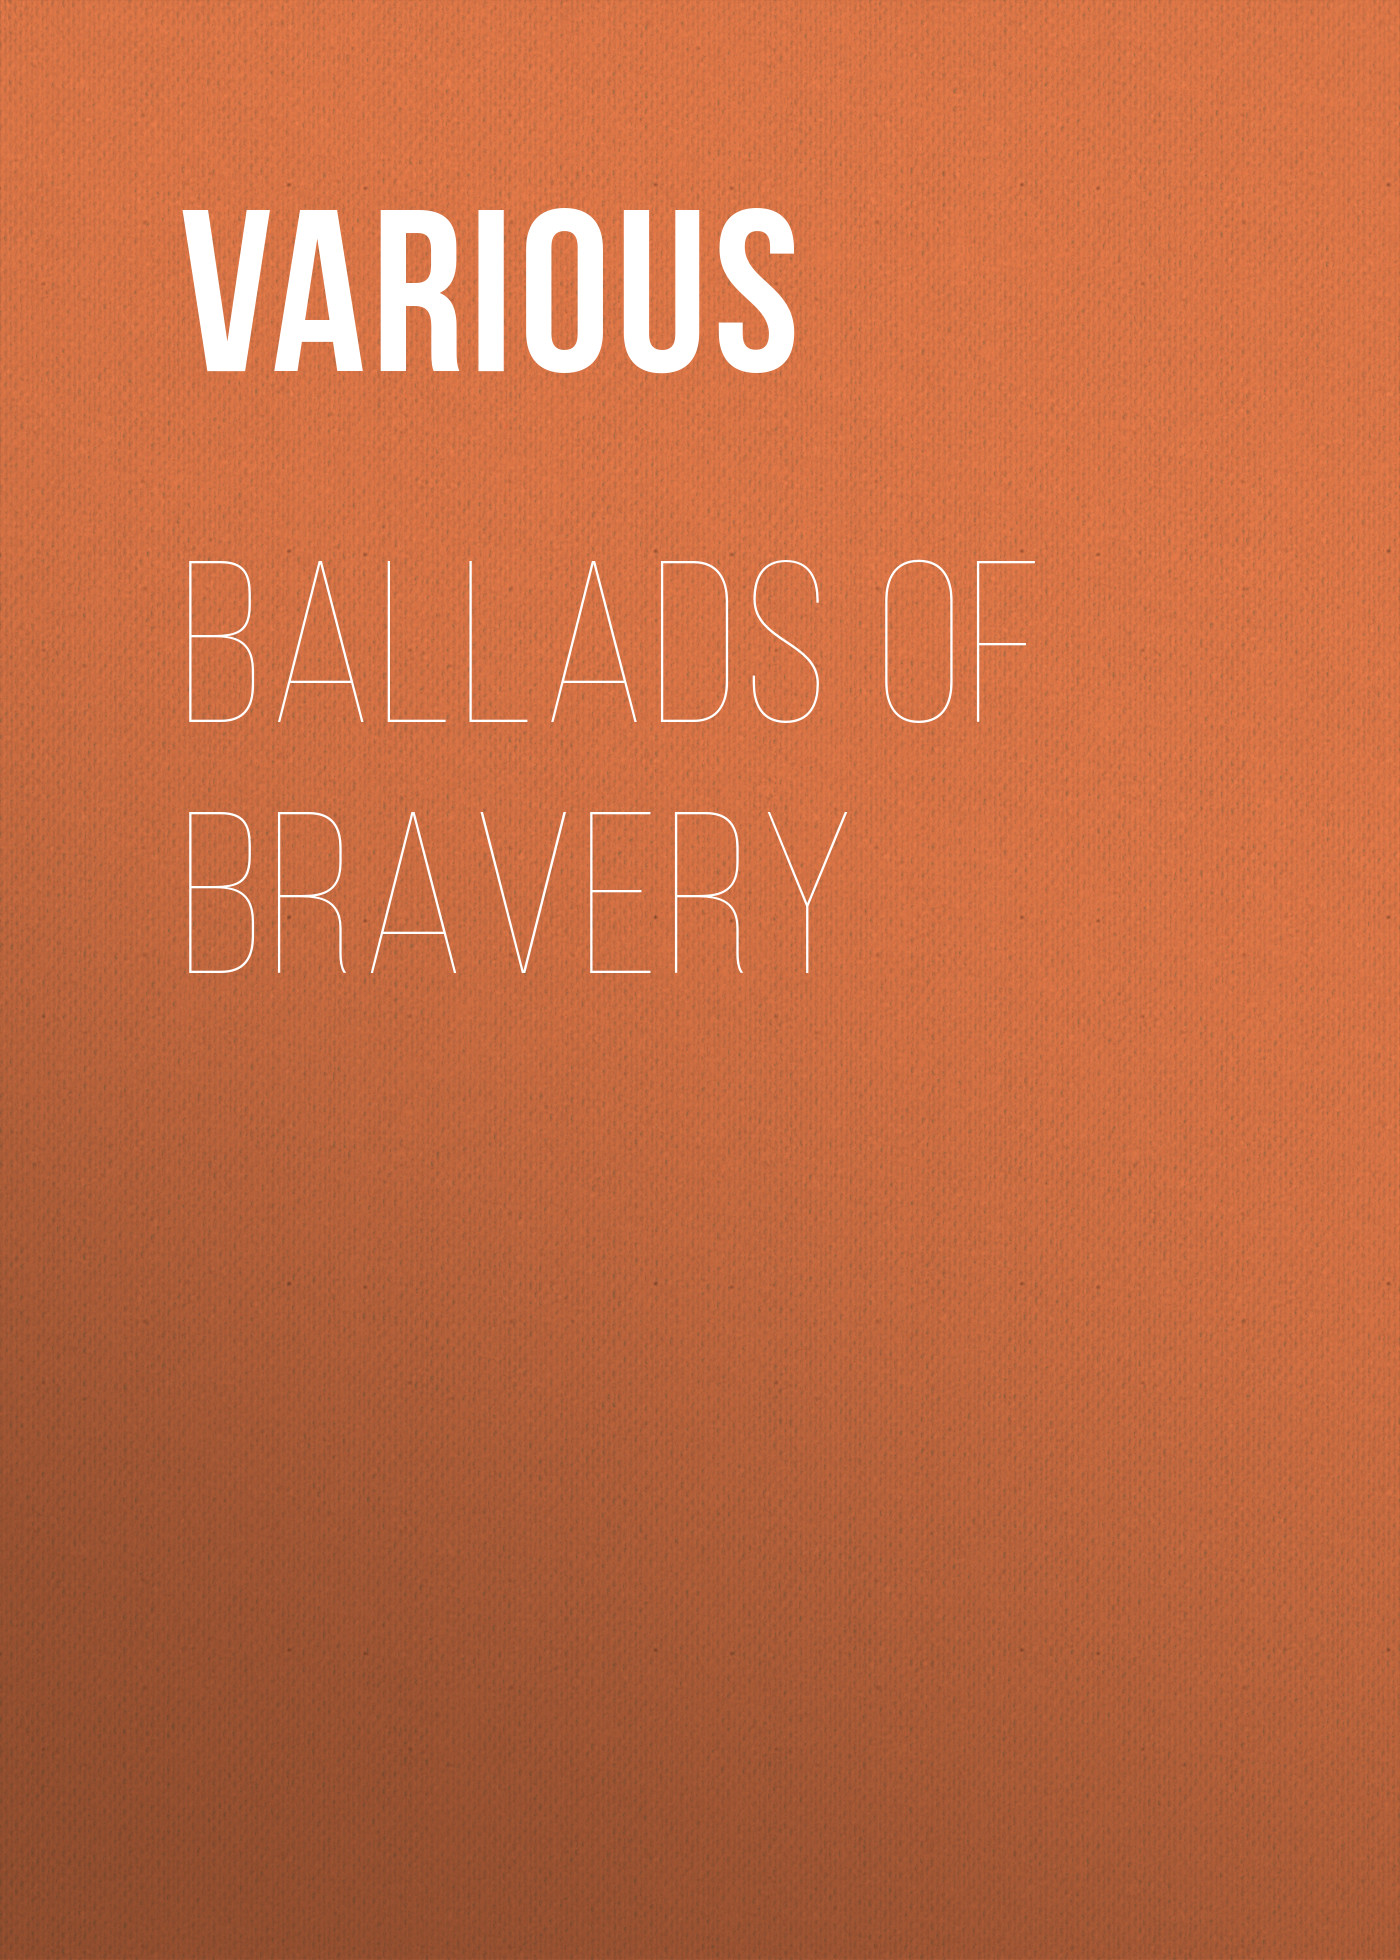 Various Ballads of Bravery various ballads of beauty